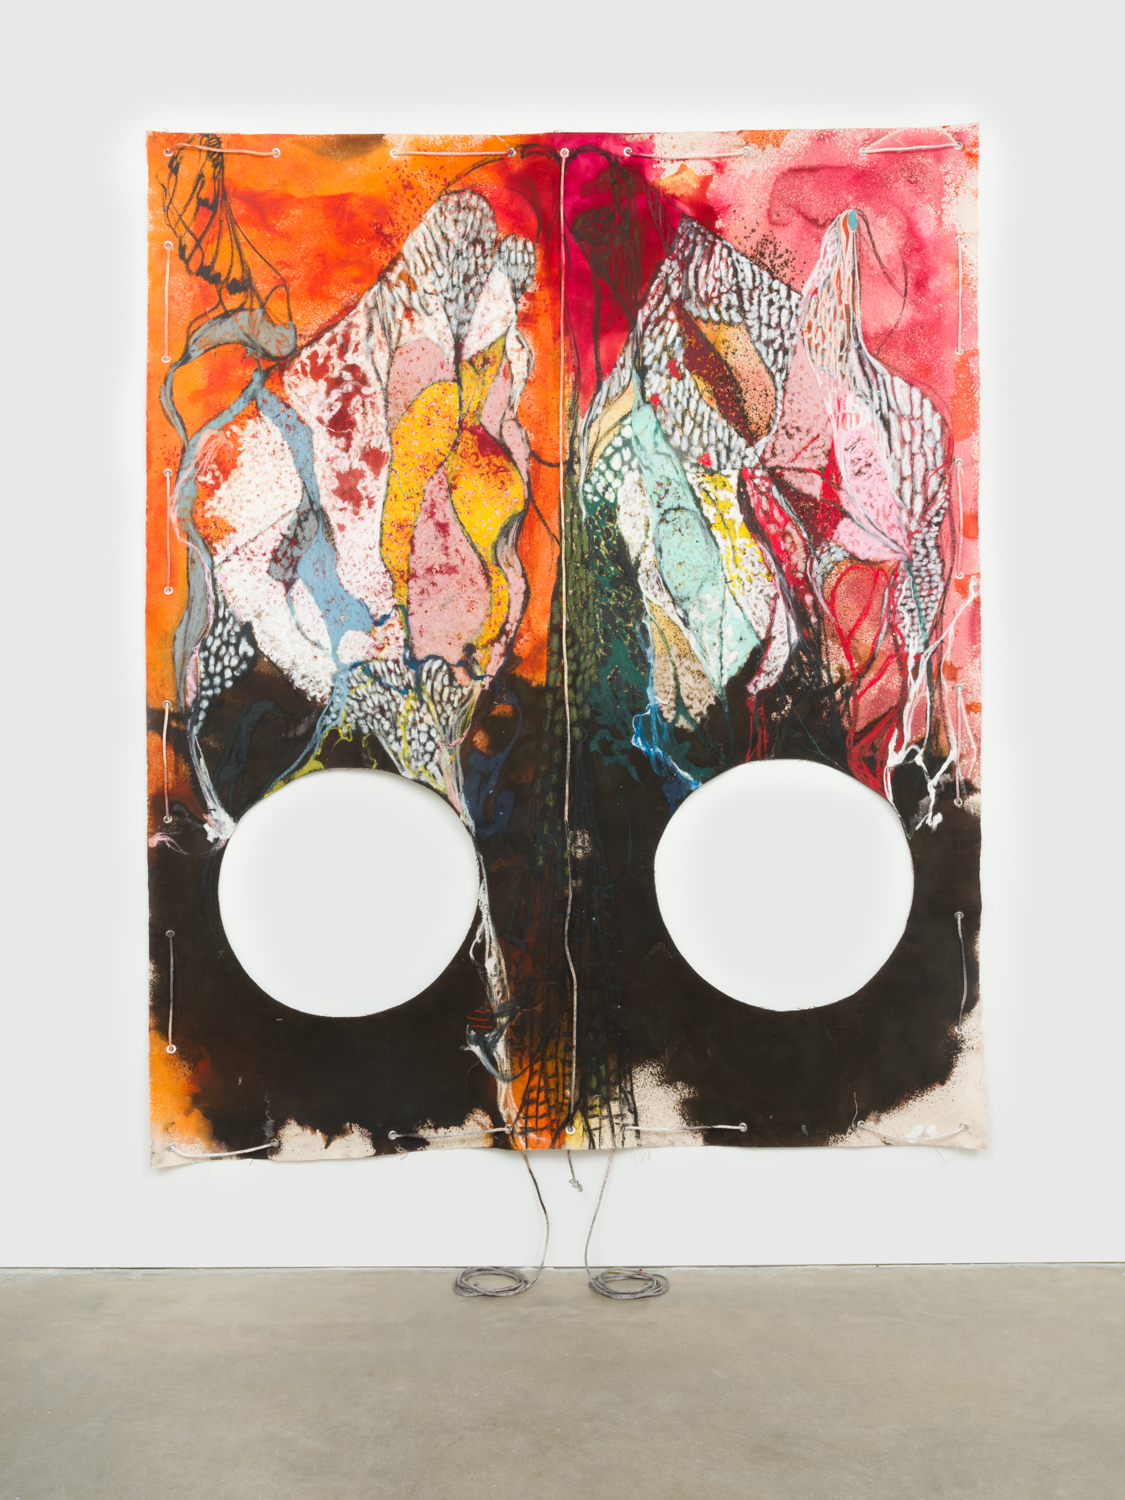 NaotakaHiro  Untitled (Hut)  2018 Canvas, fabric dye, oil pastel, rope and grommets 108h x 84w in NaoH038